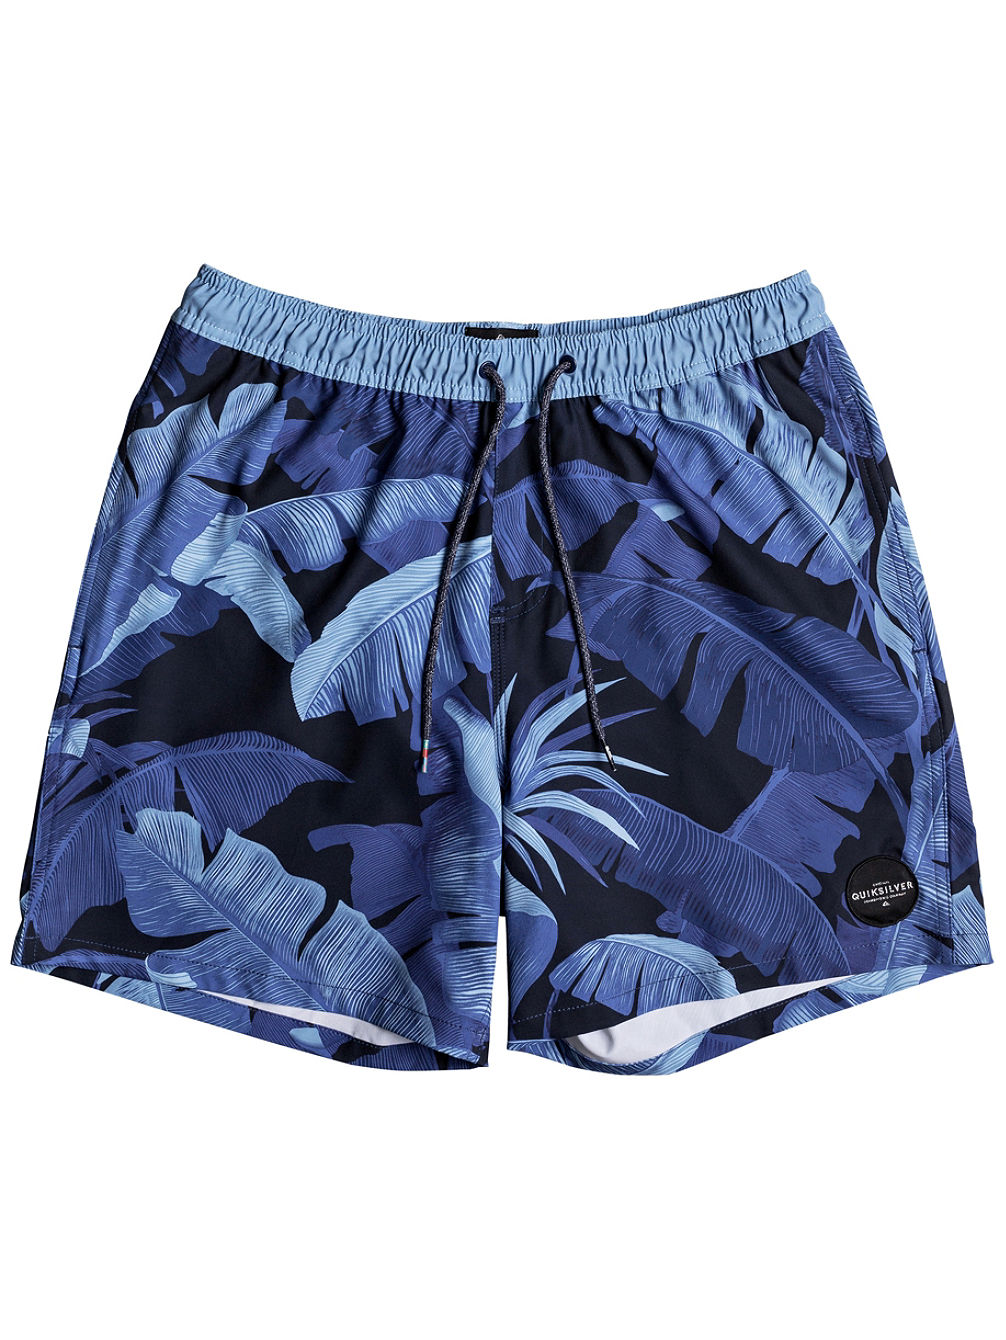 "Island Time Volley 17"" Boardshorts"